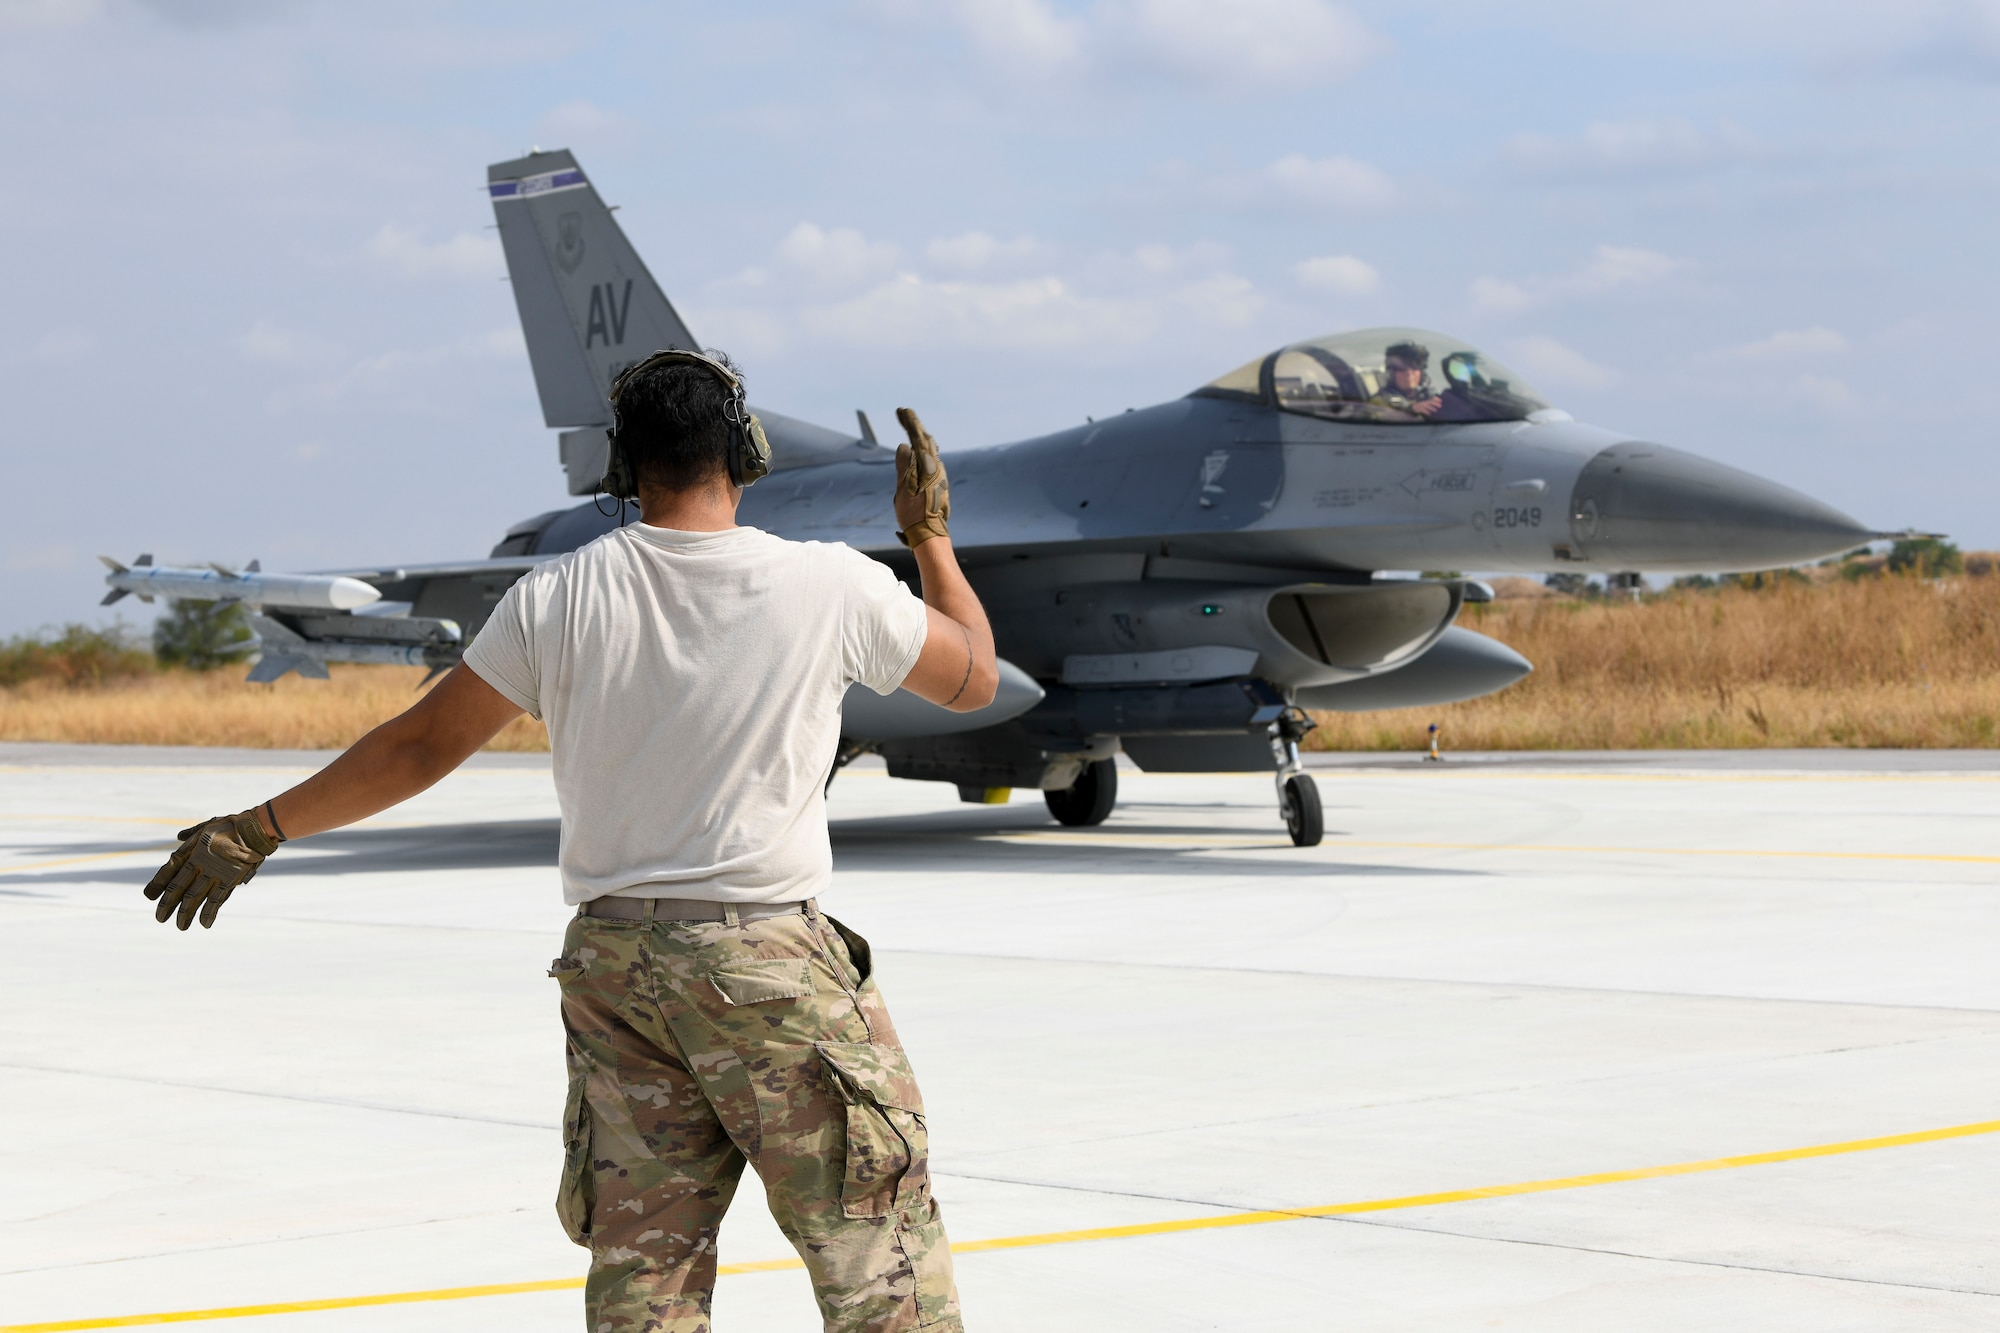 """U.S. Air Force Airmen and F-16 Fighting Falcons assigned to the 31st Fighter Wing executed a rapid deployment to conduct """"hot pit"""" refueling and participate in the bilateral training exercise with the Bulgarian Air Force."""